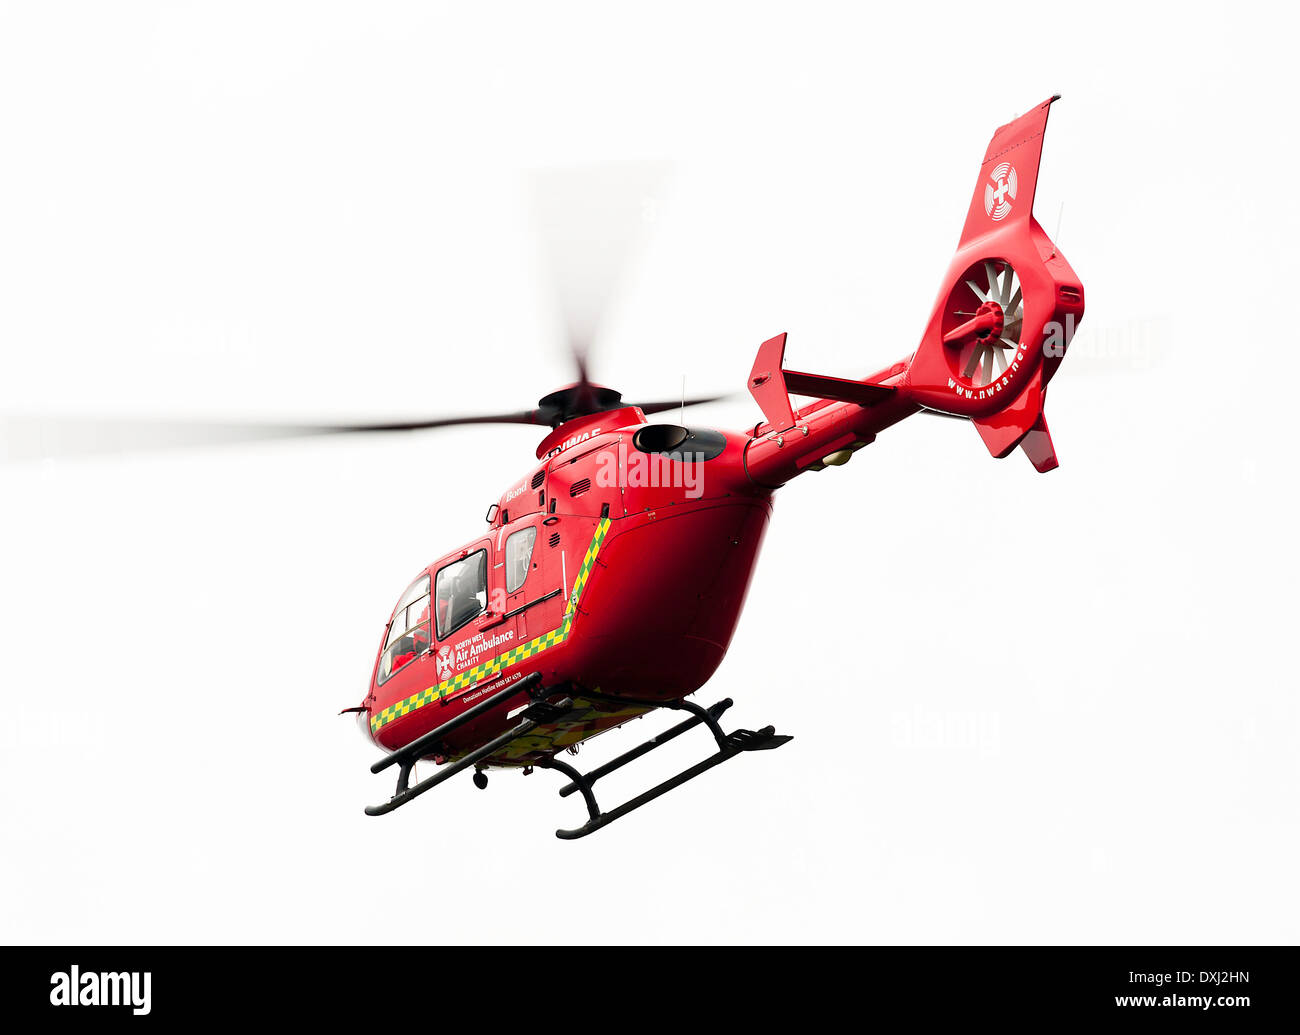 North West Eurocopter EC135 T2 Helicopter G-NWAE Overflying Alsager Cheshire on a Medical Emergency England United Kingdom UK - Stock Image